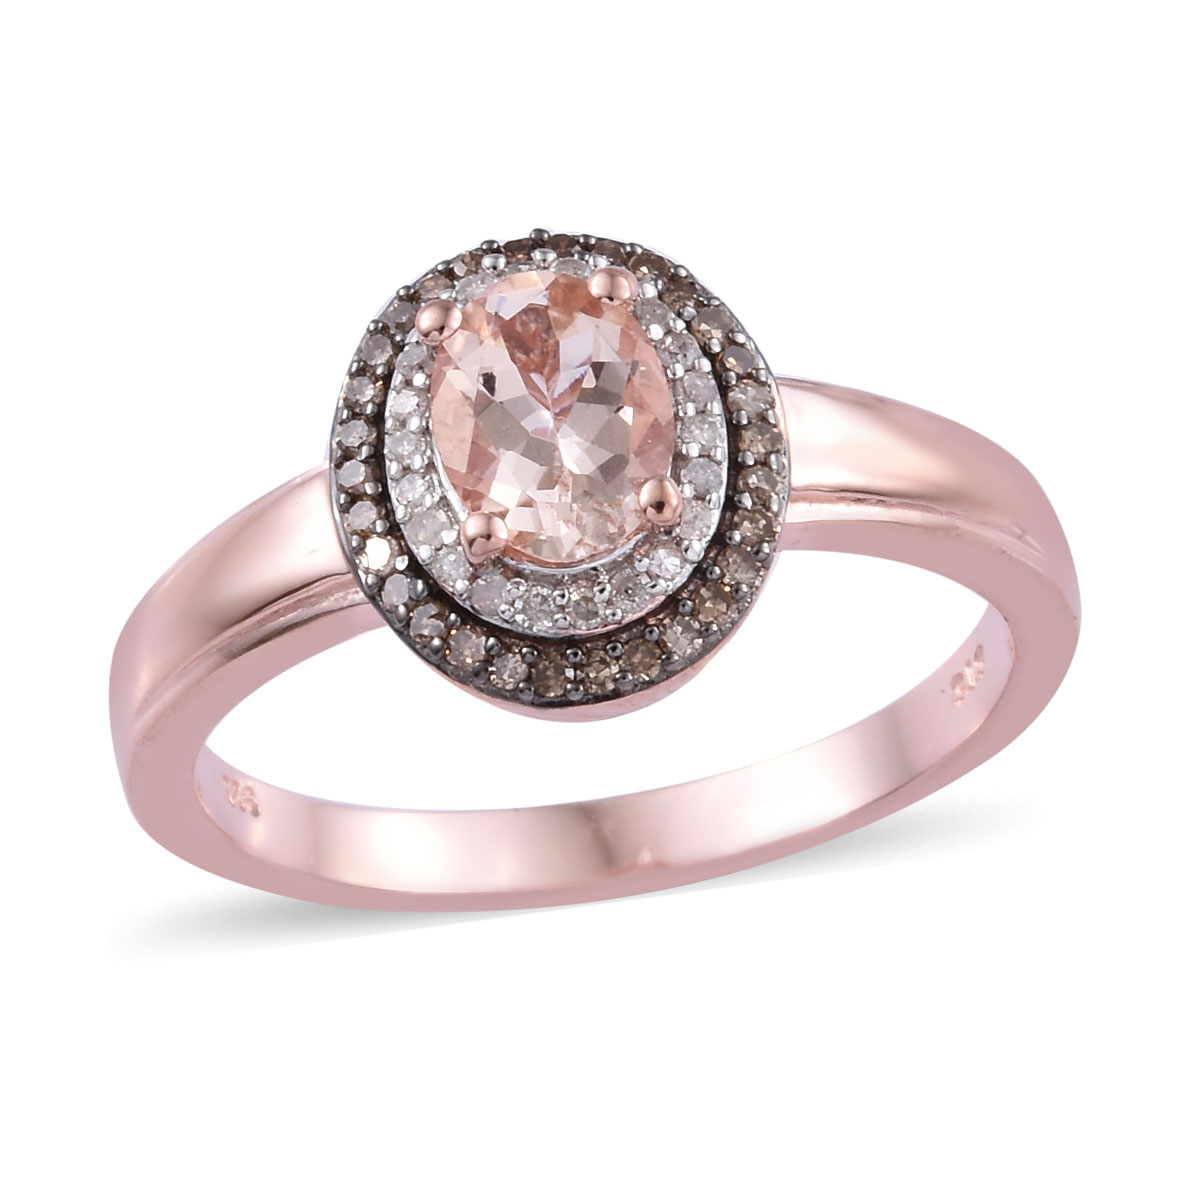 Marropino Morganite, Diamond (0.32 ct) Double Halo Ring in Rhodium & Vermeil RG Over Sterling Silver (Size 10.0) 1.32 ctw